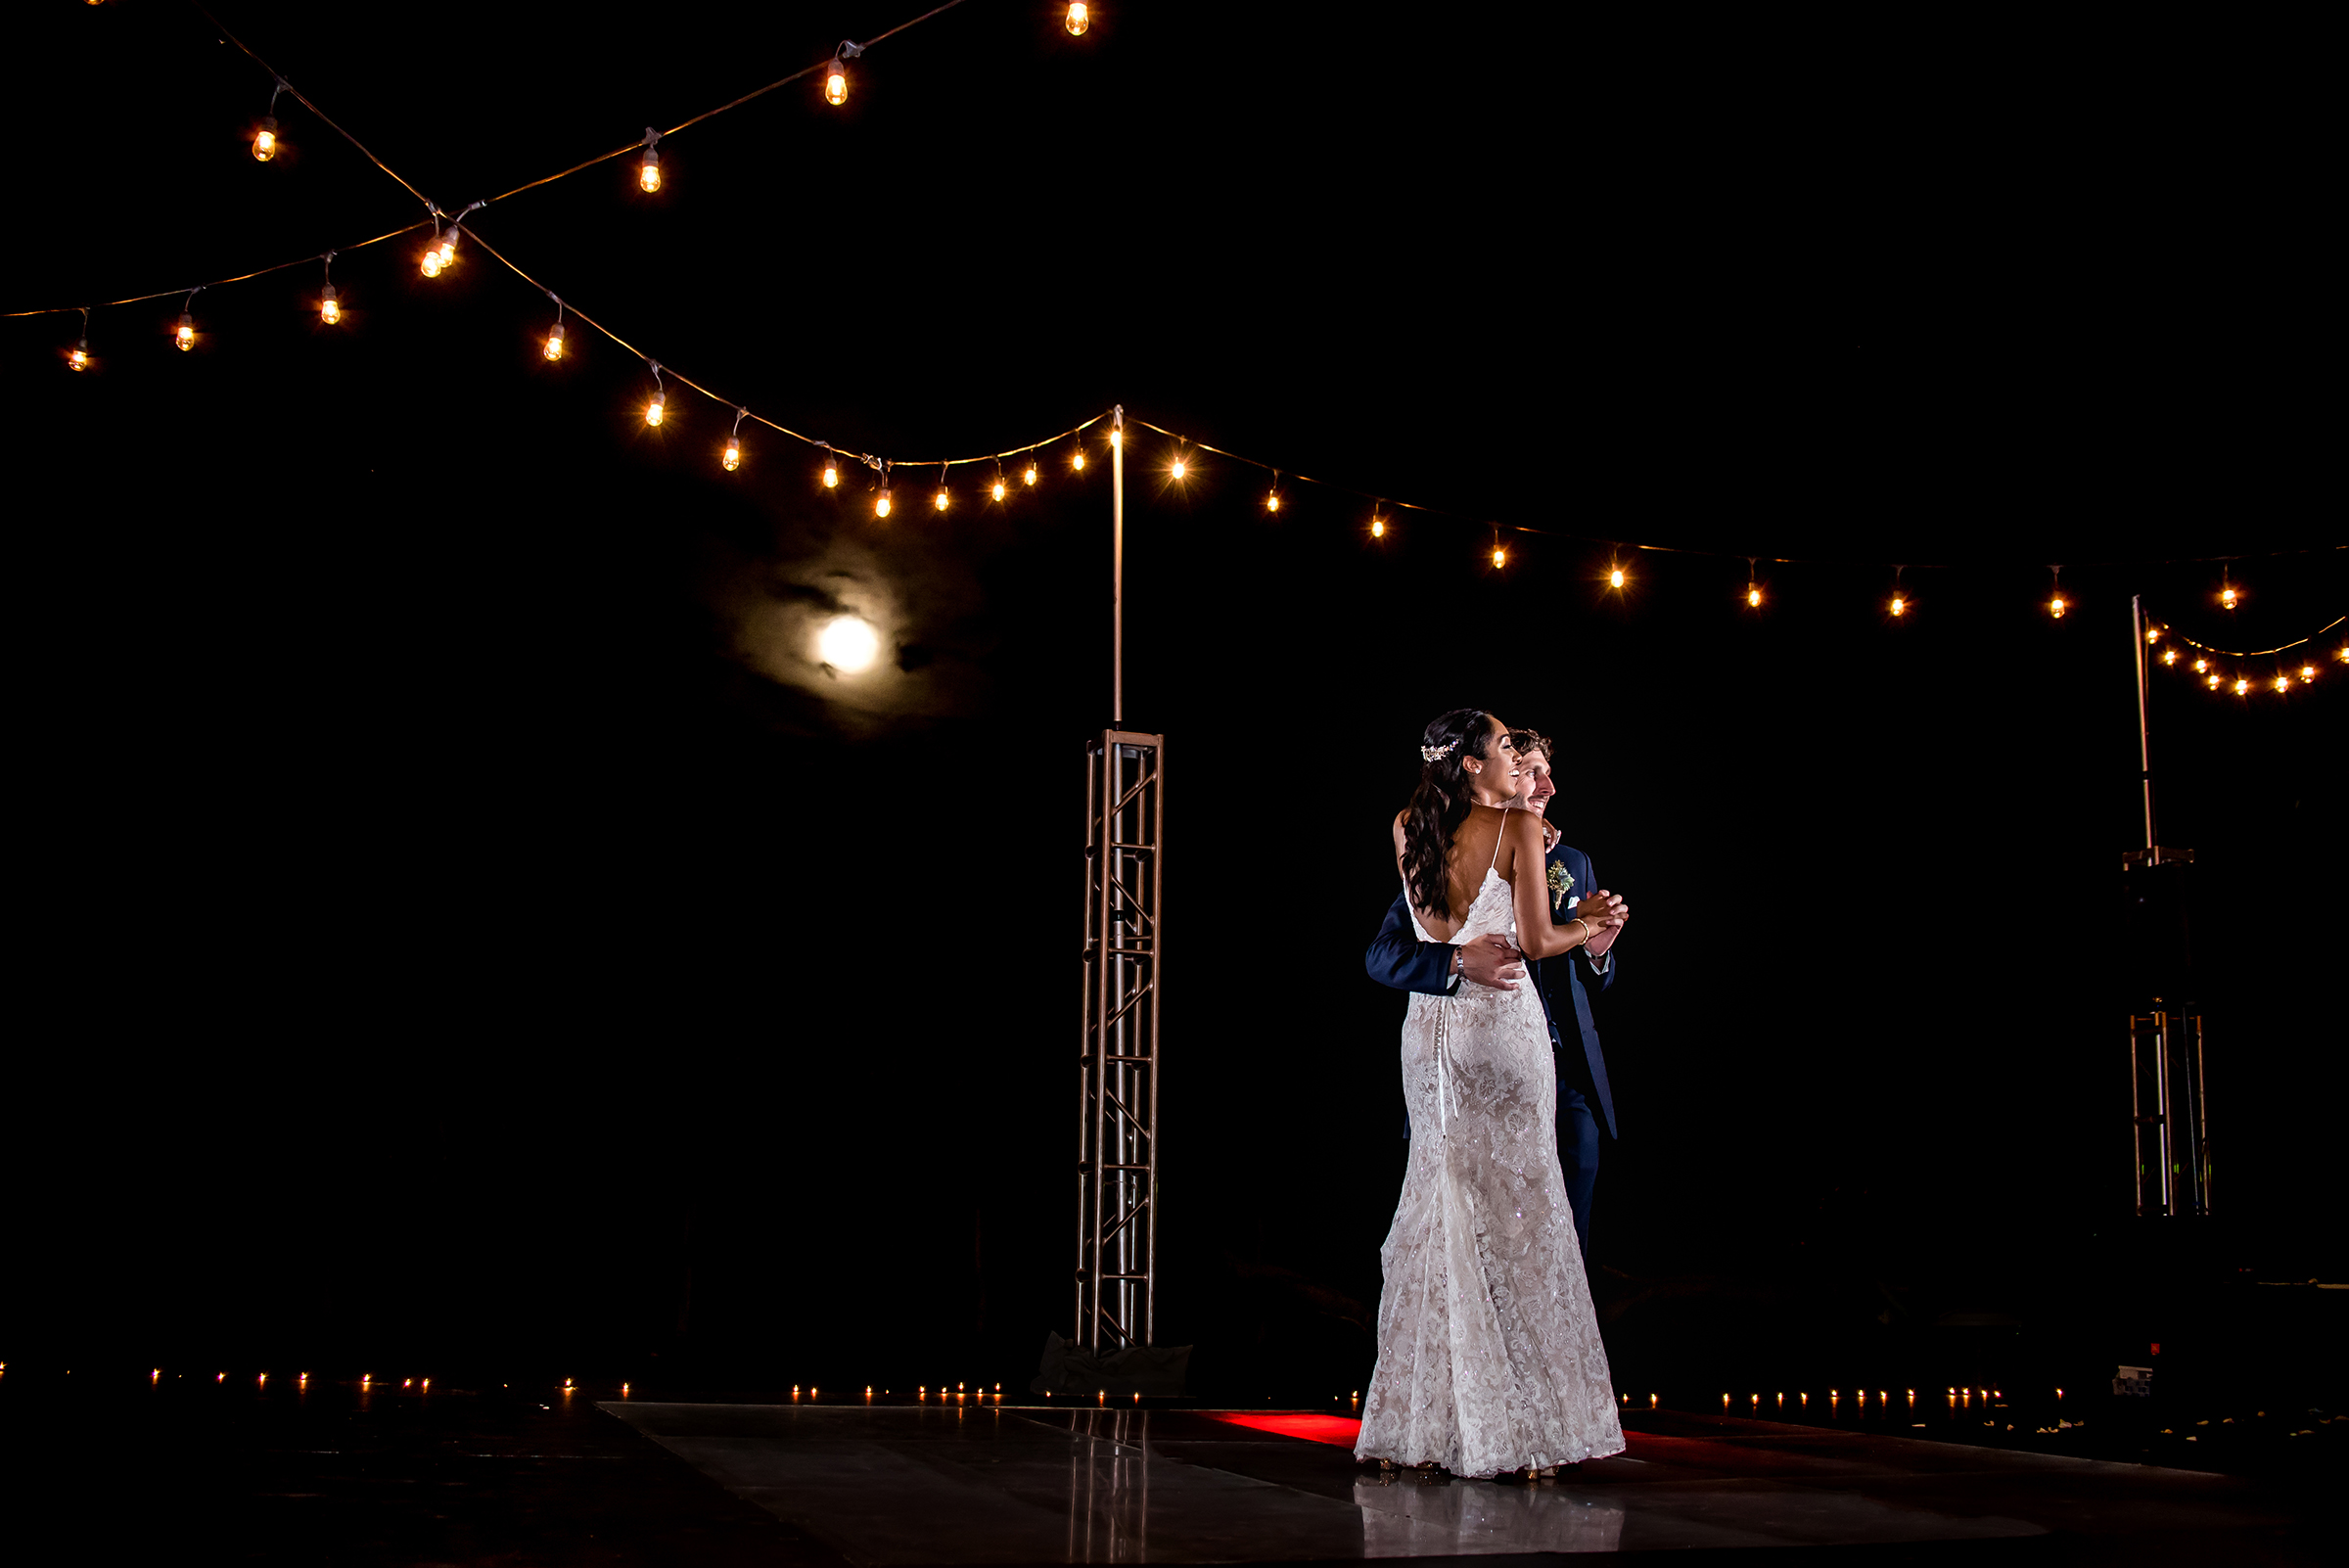 First dance under the moon - photo by Gloria Ruth Photography